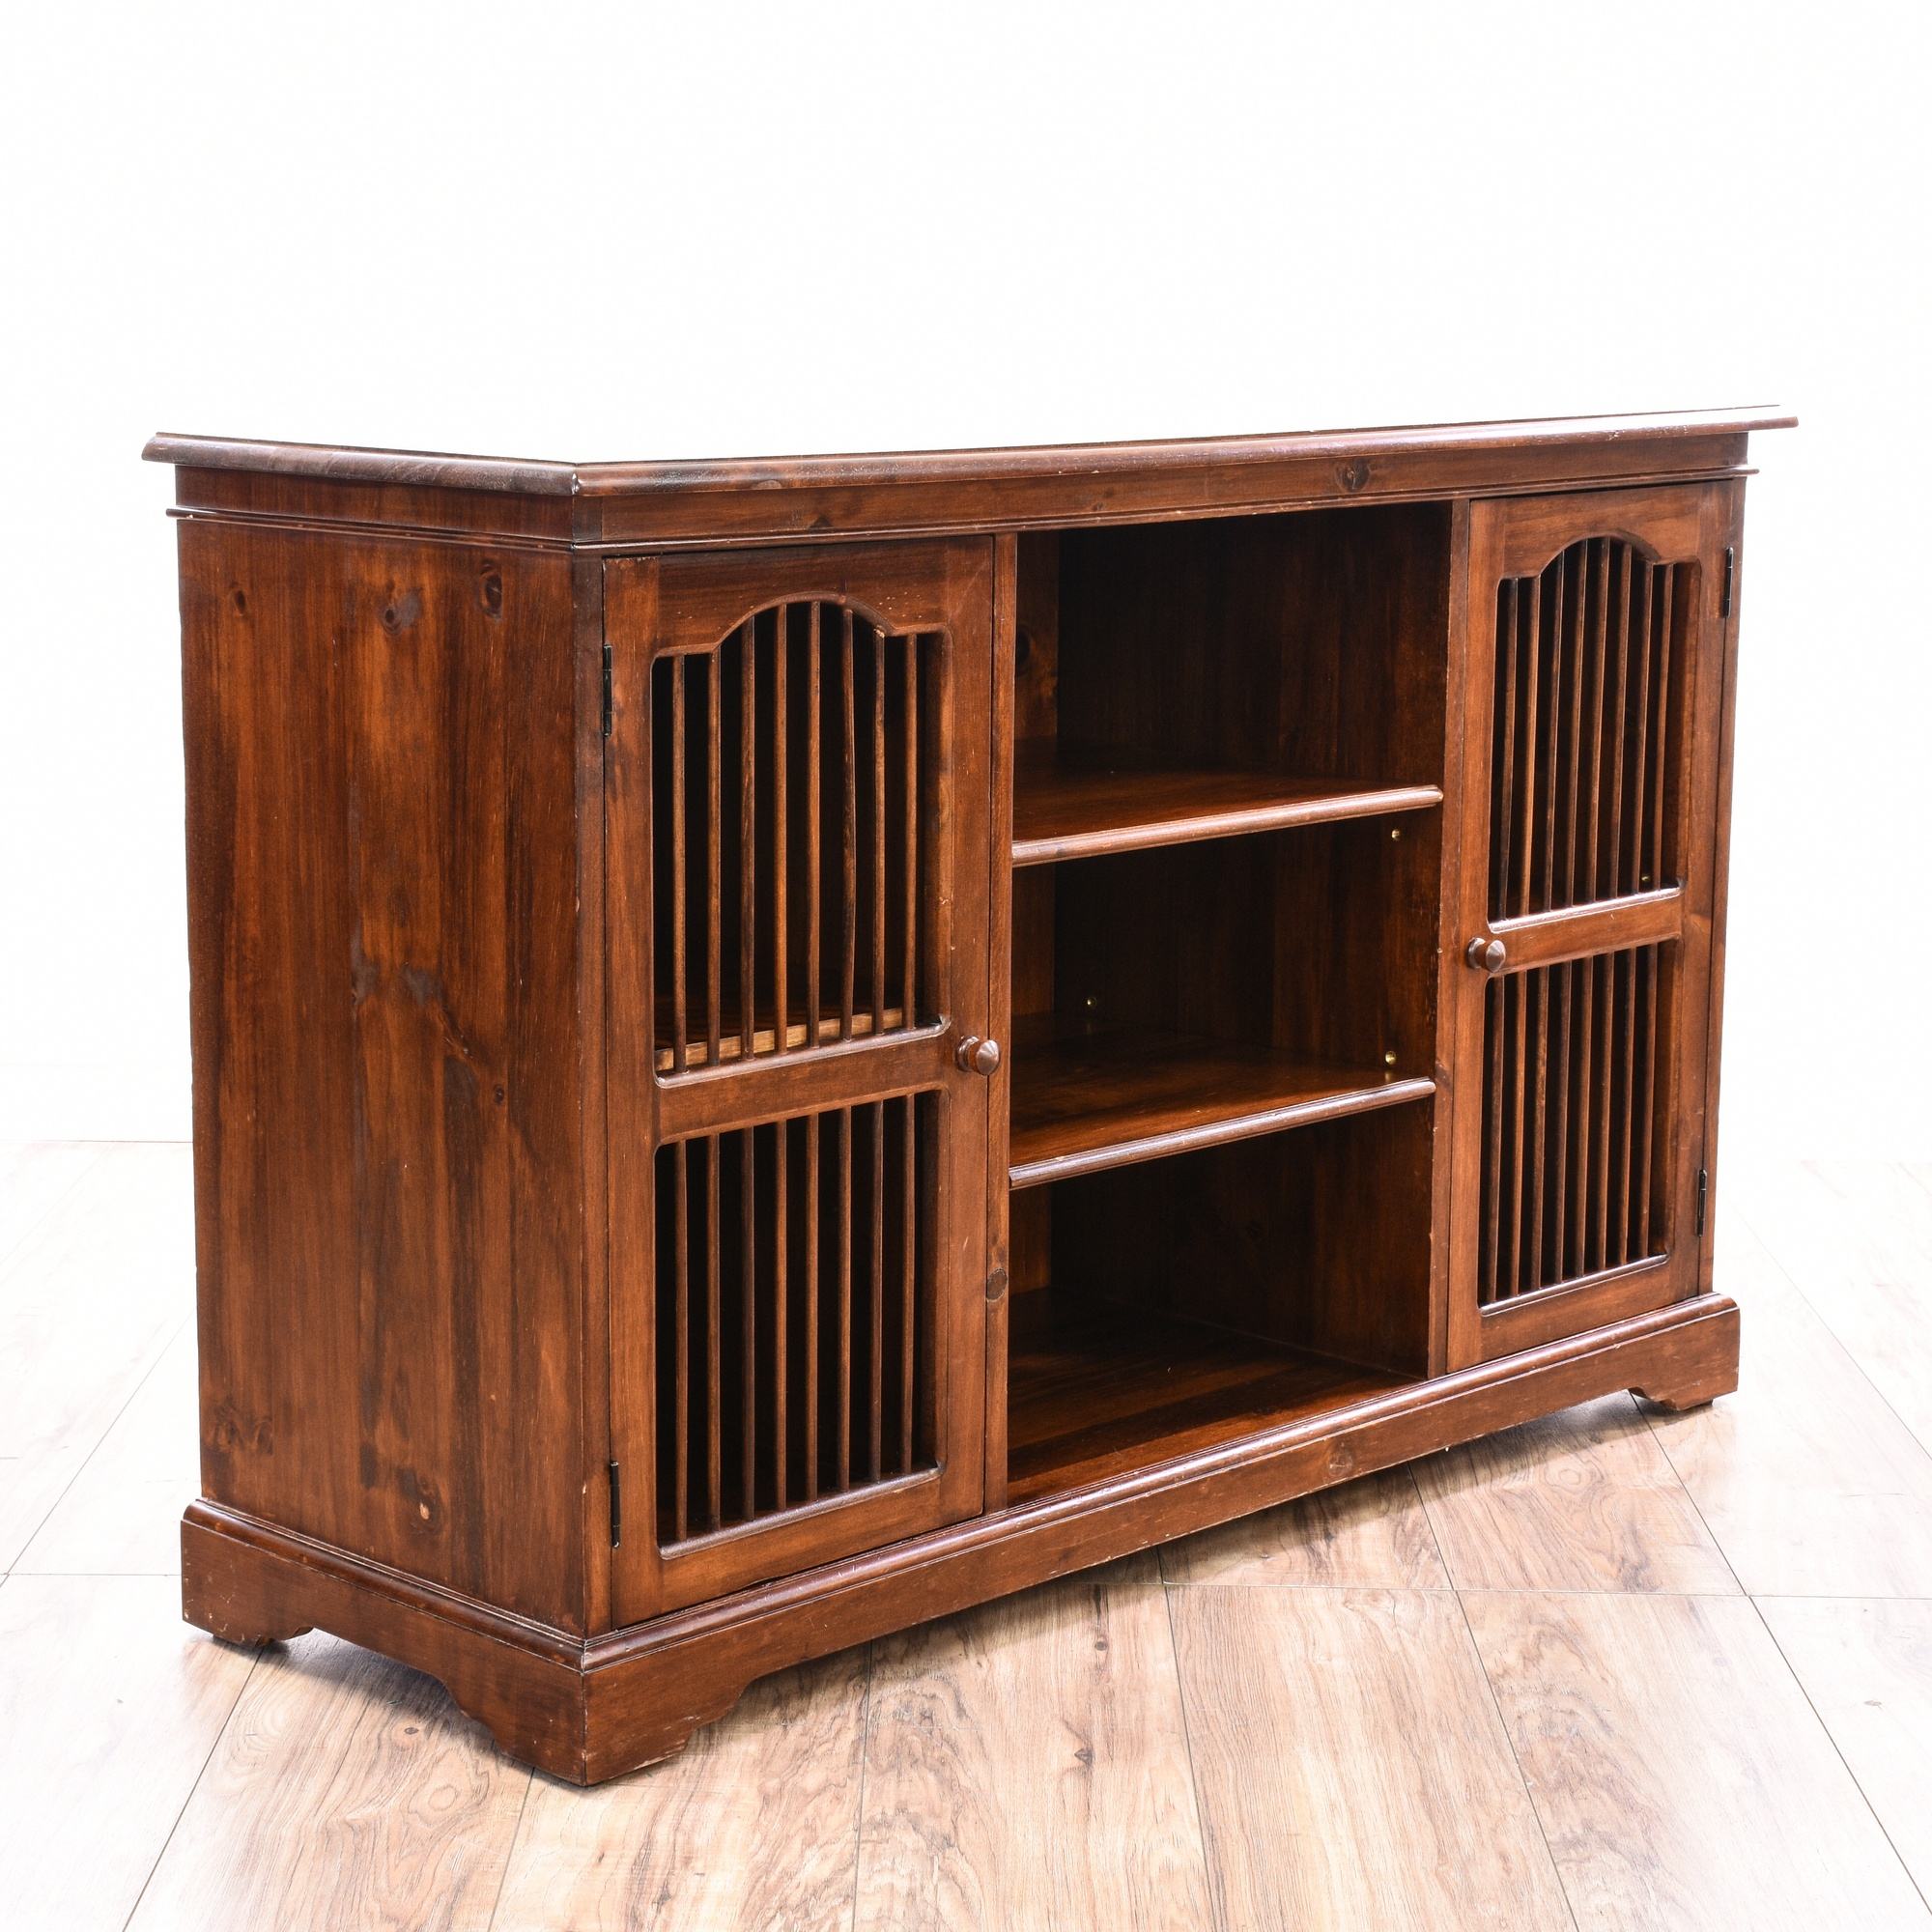 Foyer Console Cabinet : Media cabinet entryway console table loveseat vintage